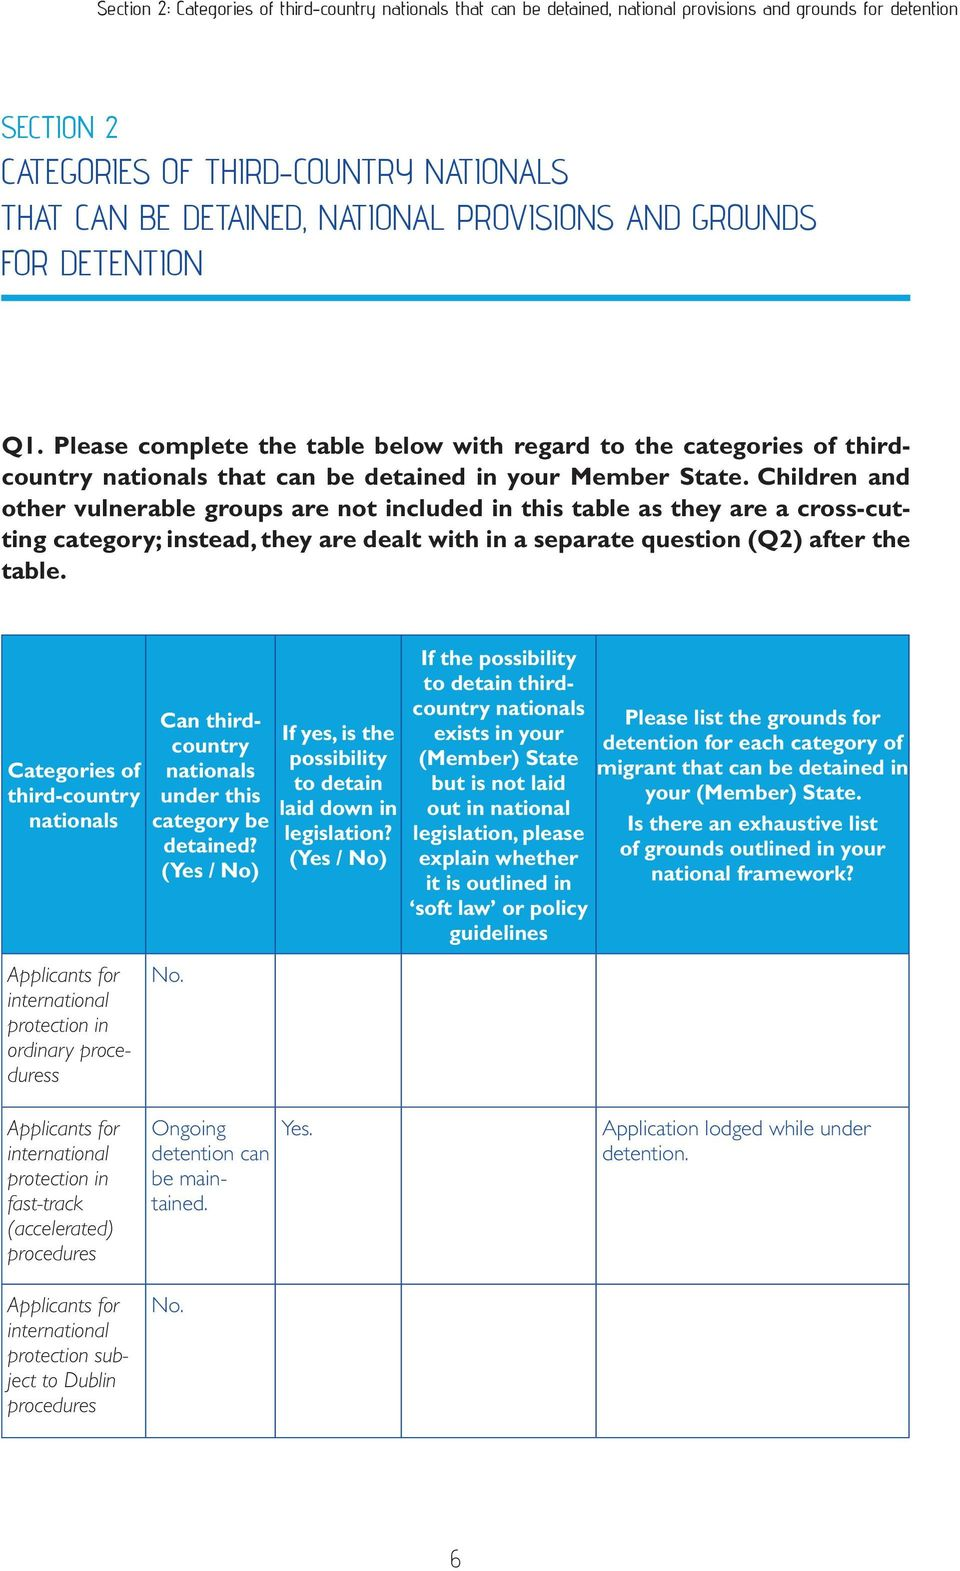 Children and other vulnerable groups are not included in this table as they are a cross-cutting category; instead, they are dealt with in a separate question (Q2) after the table.